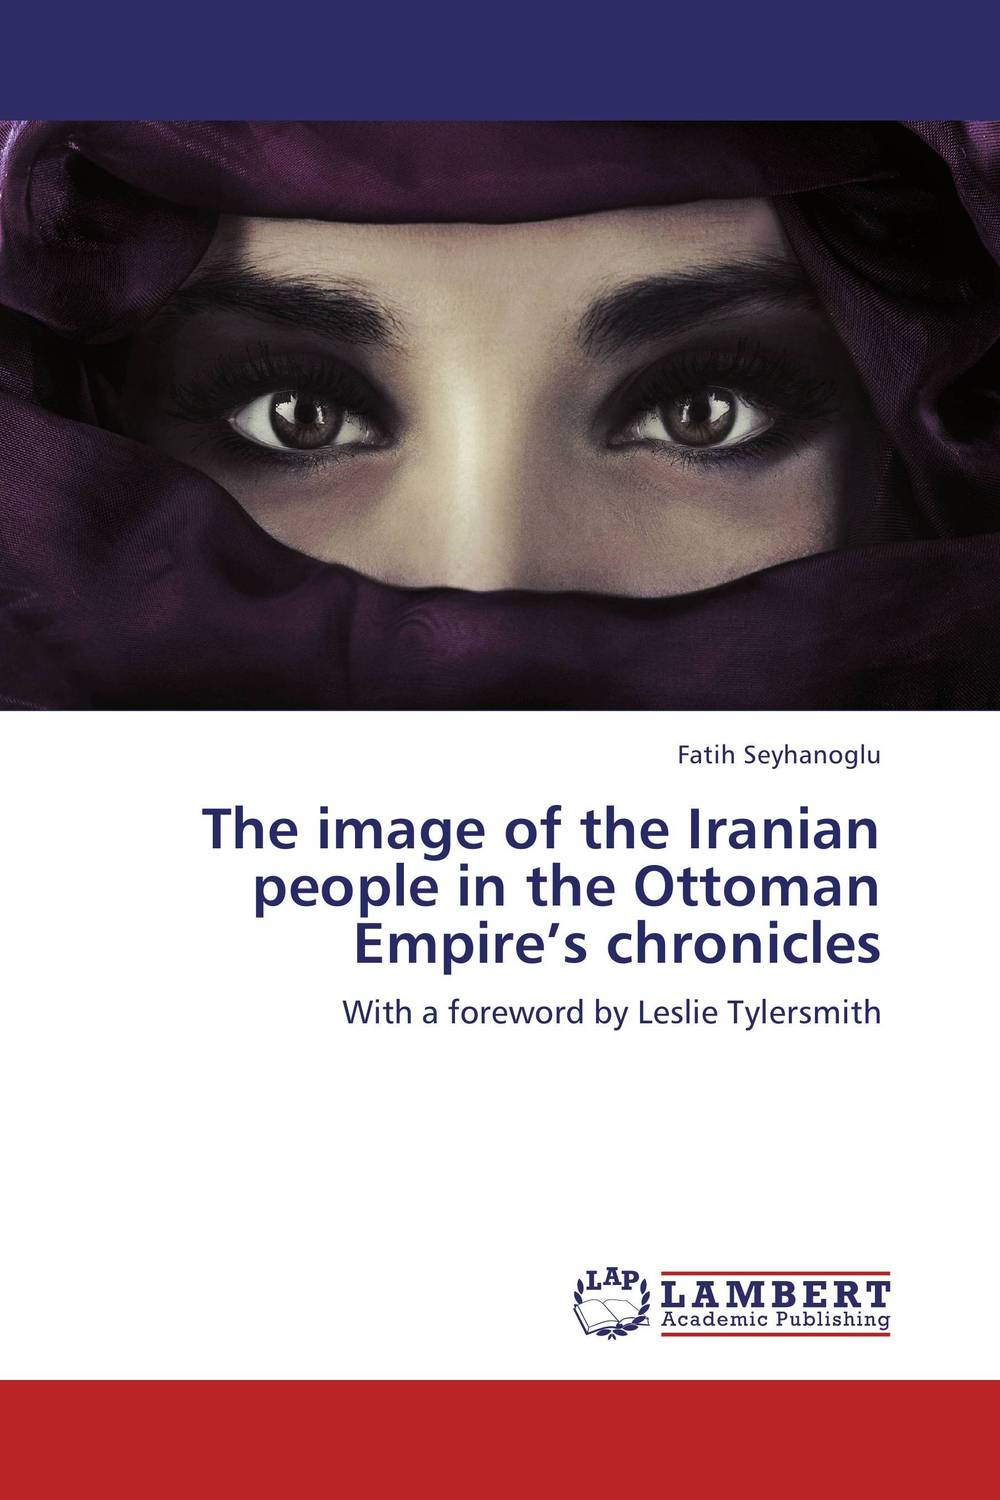 The image of the Iranian people in the Ottoman Empire's chronicles victoria purcell–gates other people s words – the cycle of low literacy paper